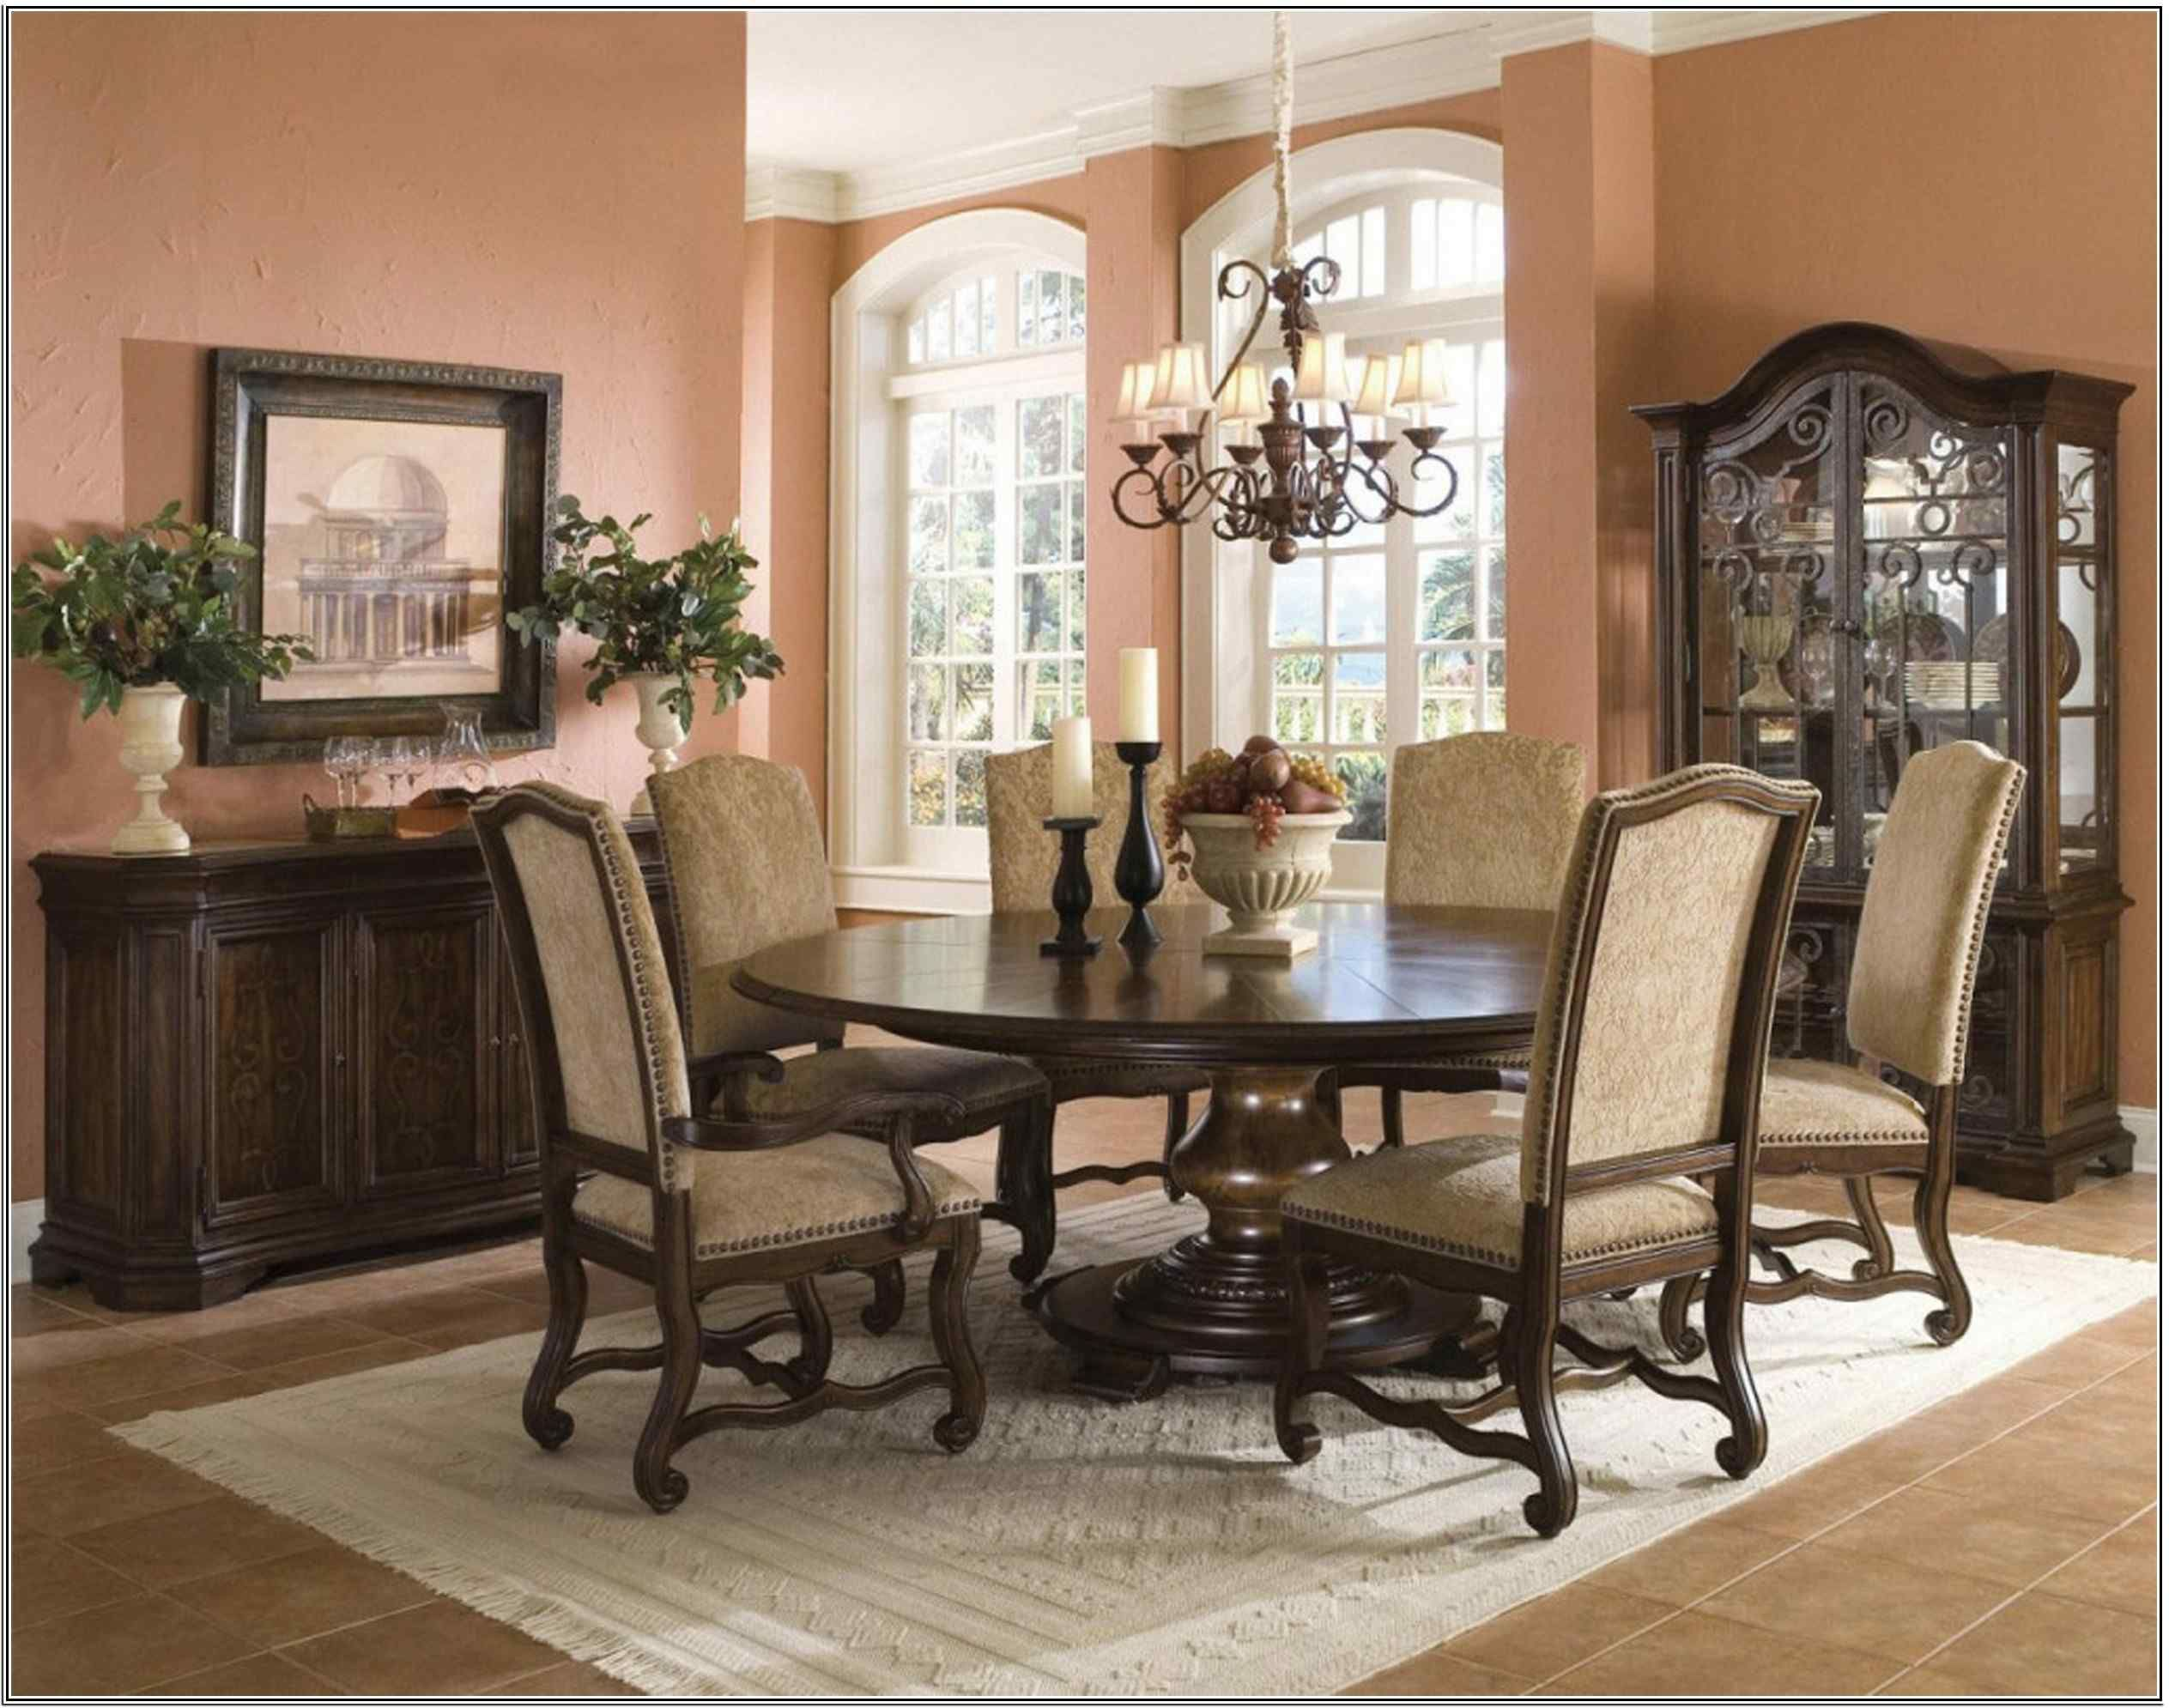 Best Of Dining Room Table Centerpiece Ideas Everyday Simple